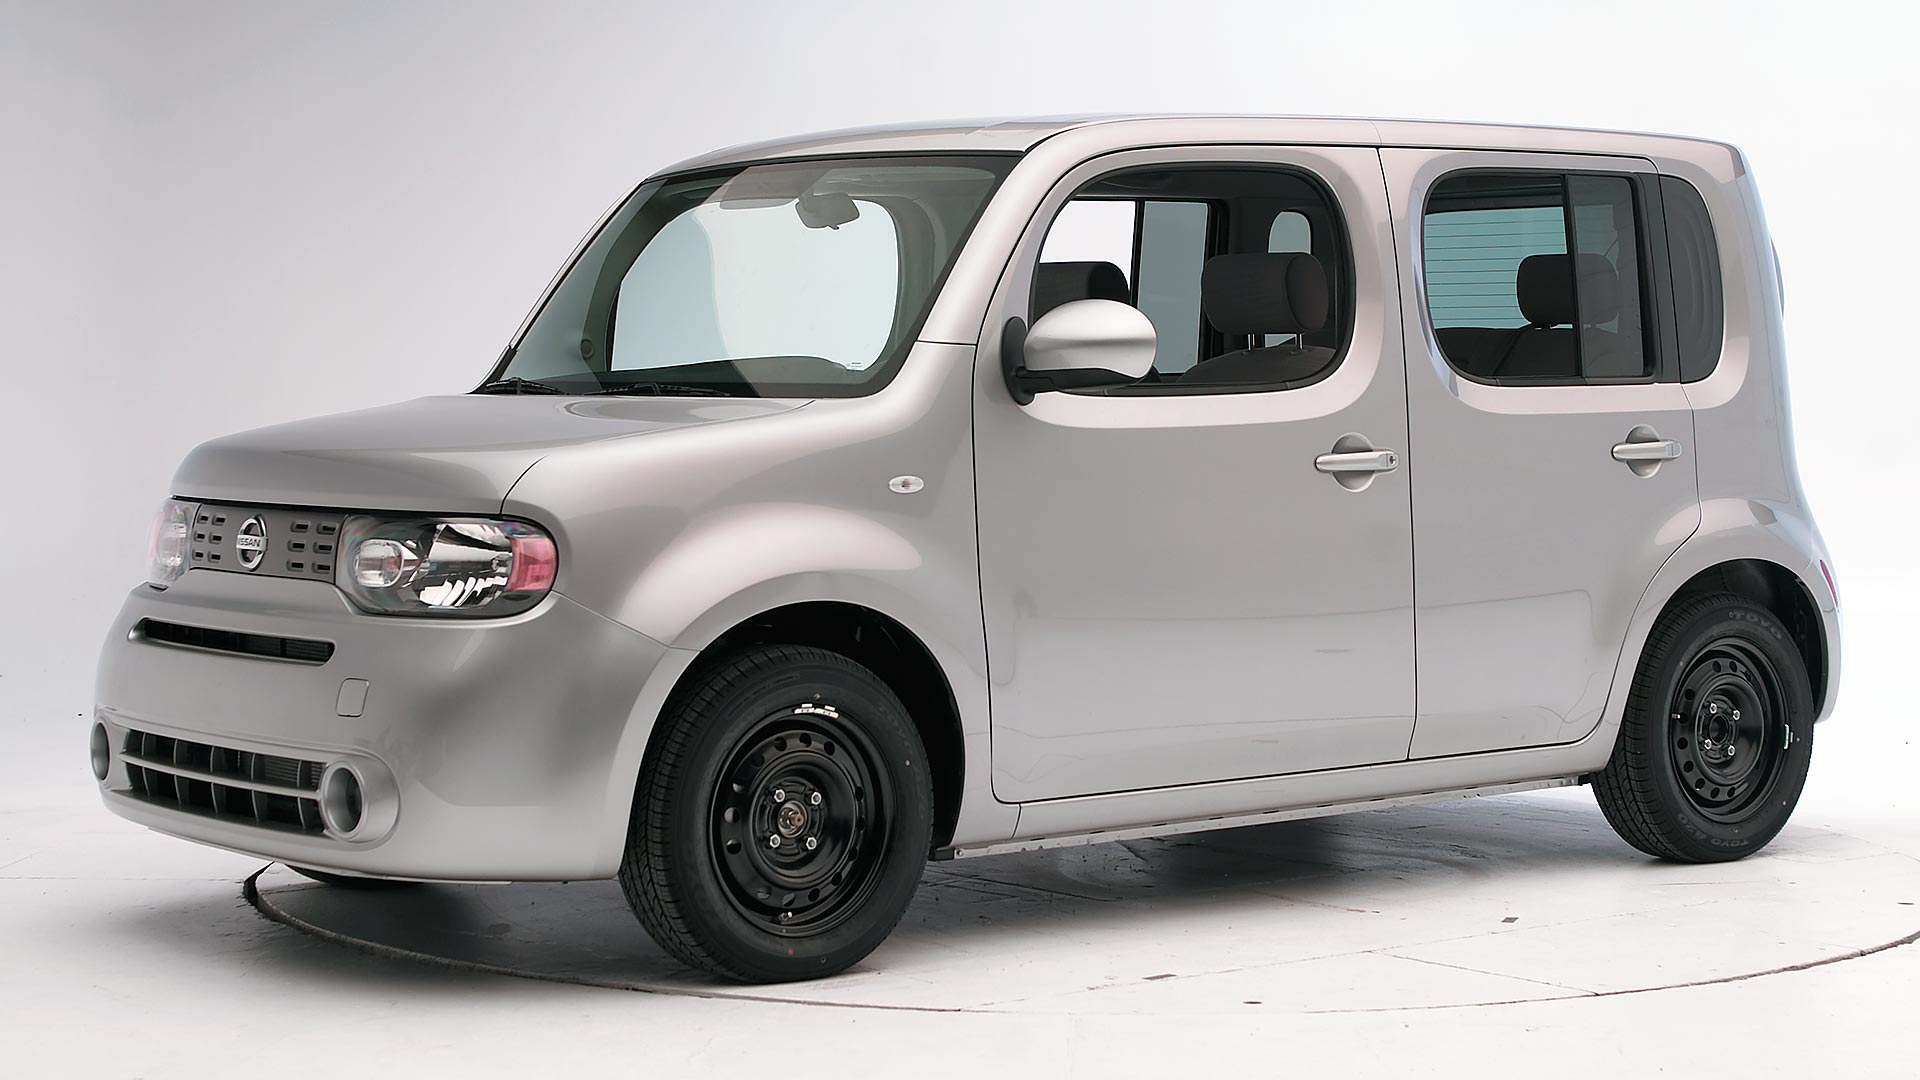 2011 Nissan Cube 4-door wagon